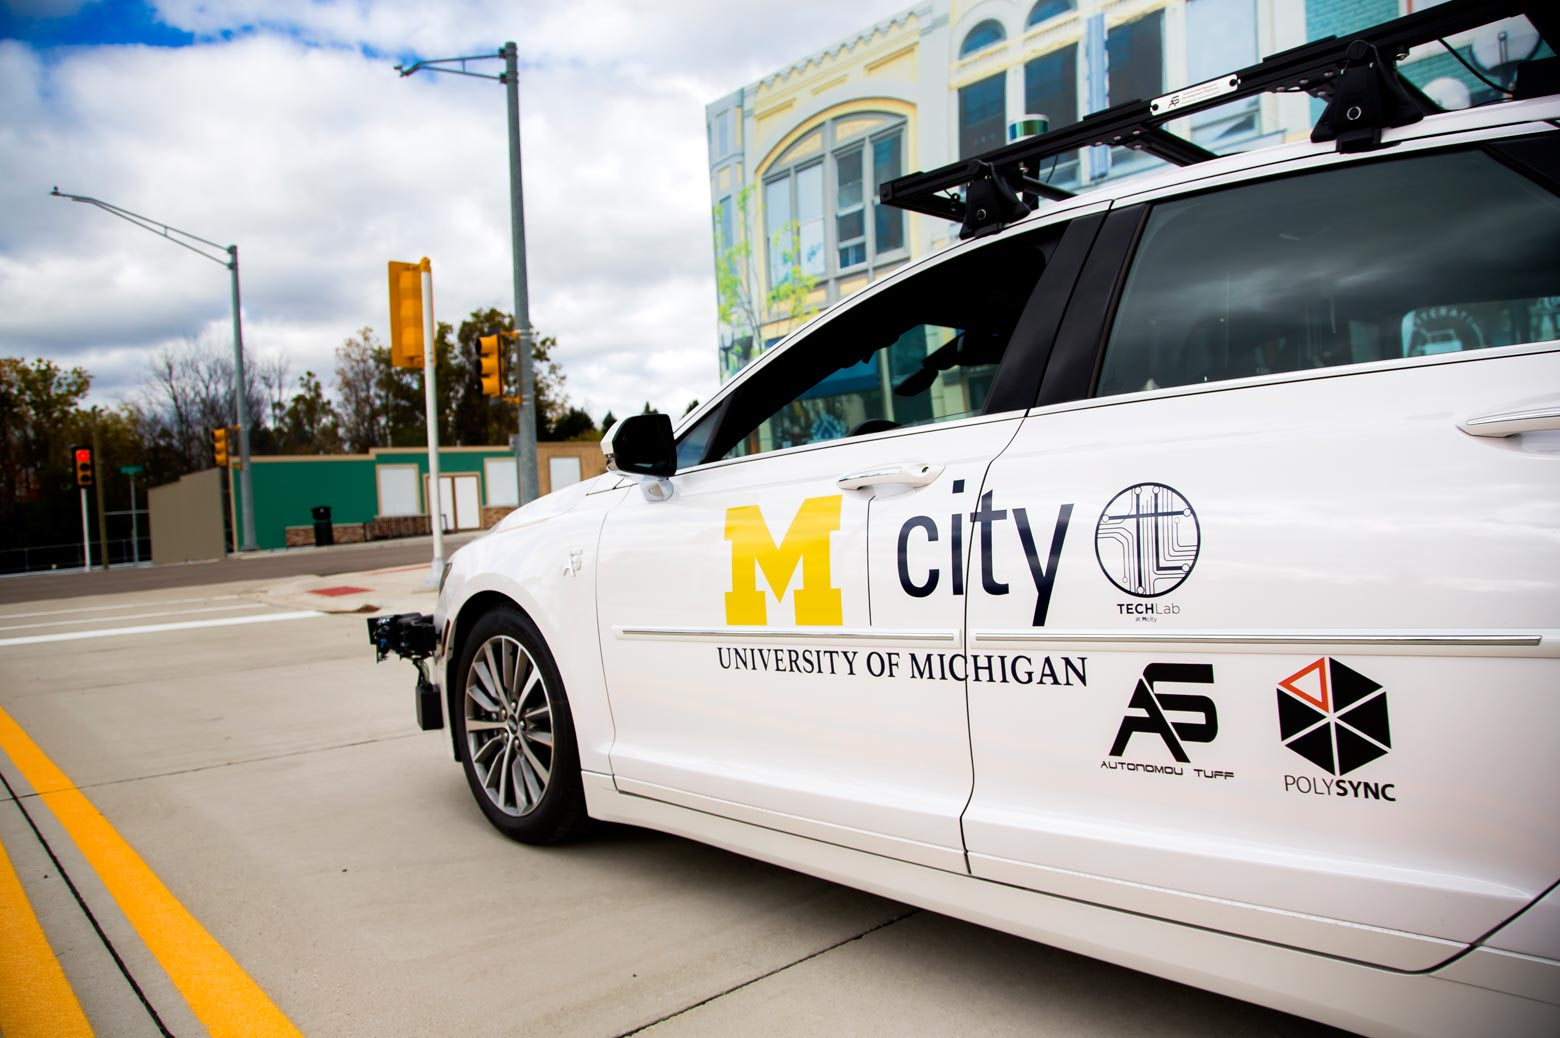 An autonomous vehicle on the road